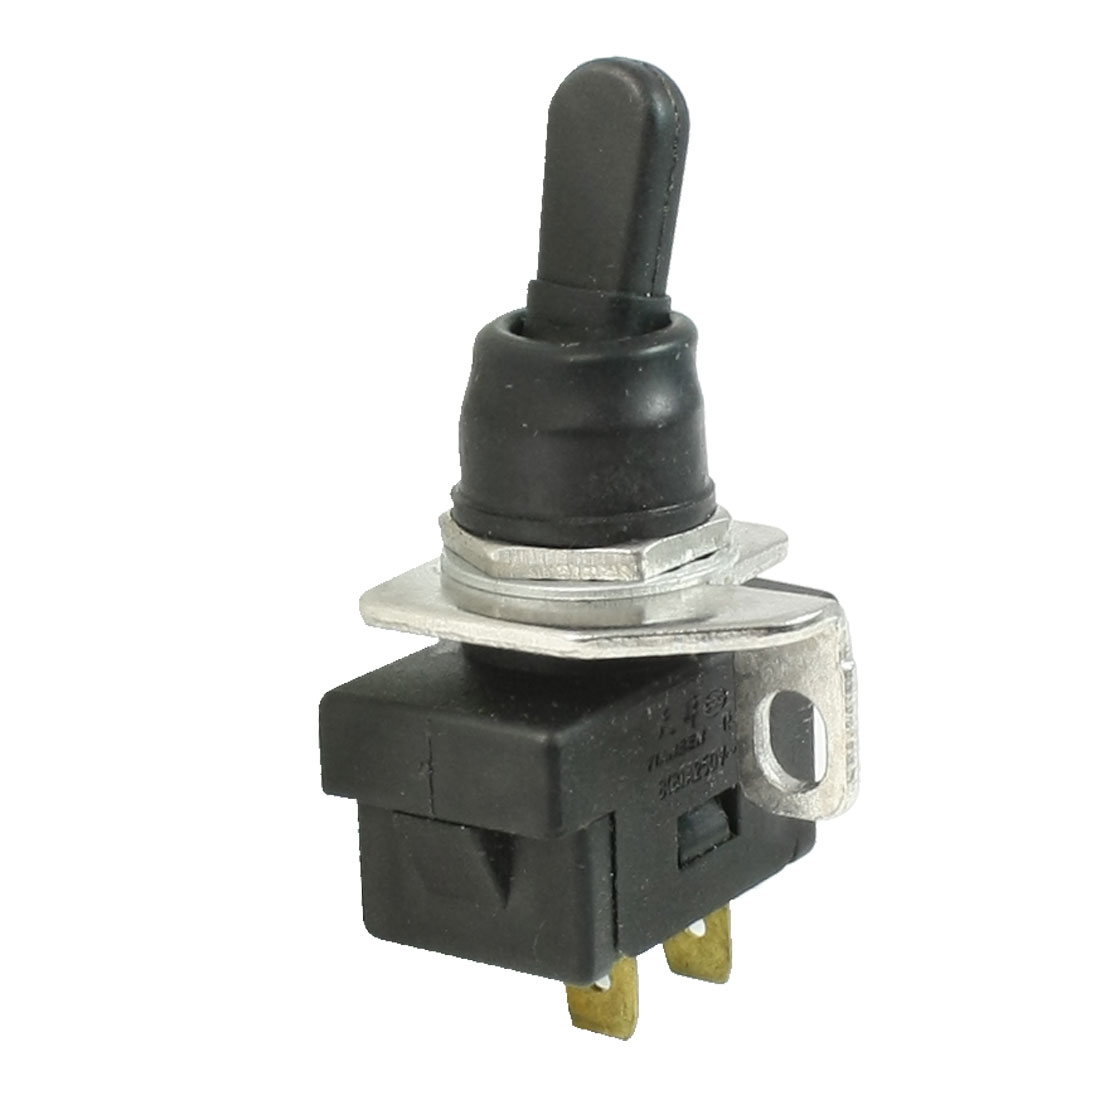 AC 250V 8A SPST ON/OFF Latching Toggle Switch for LG 100 Angle Grinder